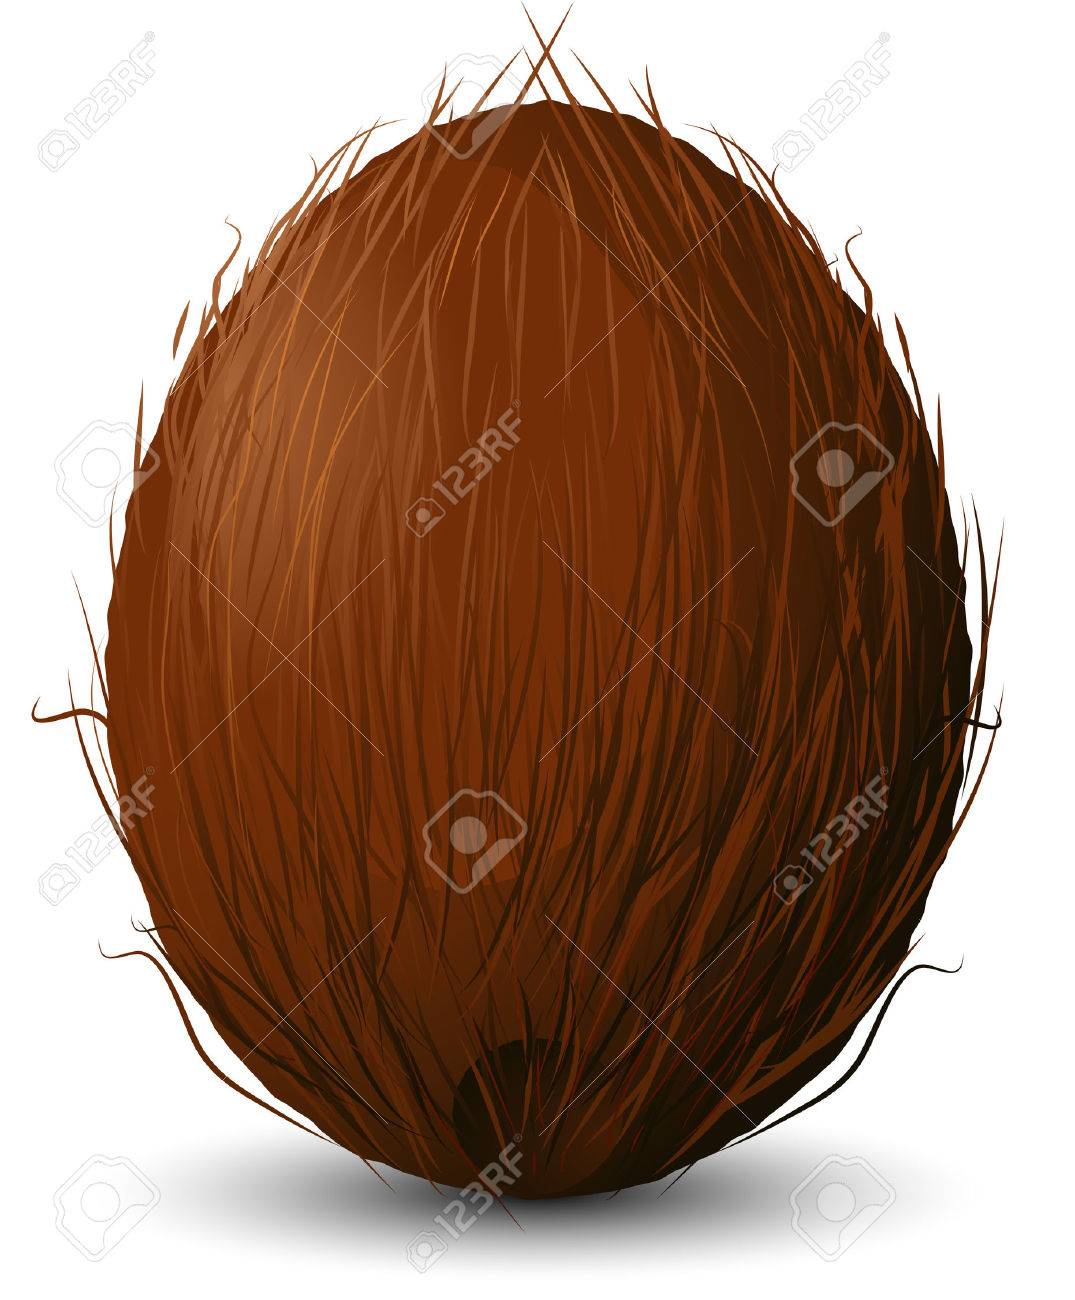 Coconut on a white background. Stock Vector - 8970827